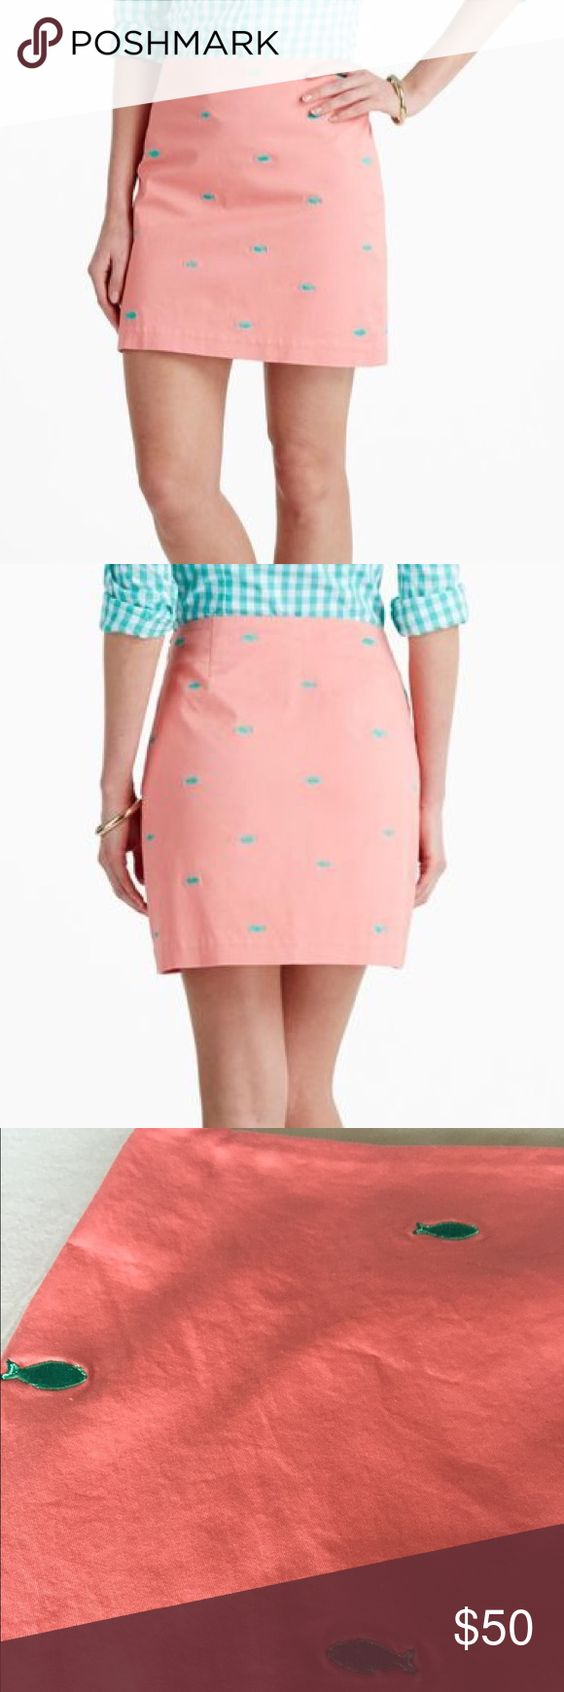 Vineyard Vines Fish Embroidery Coral Margo Skirt Beautiful Vineyard Vines NWT coral skirt with turquoise embroidered fishes on it. Waist measures 15 inches across. Length of skirt is 16.5 inches. Side zipper. Shell is 96% cotton and 4% spandex. Lining is 100% cotton. Color of the skirt is shown best in the last two pictures. Vineyard Vines Skirts